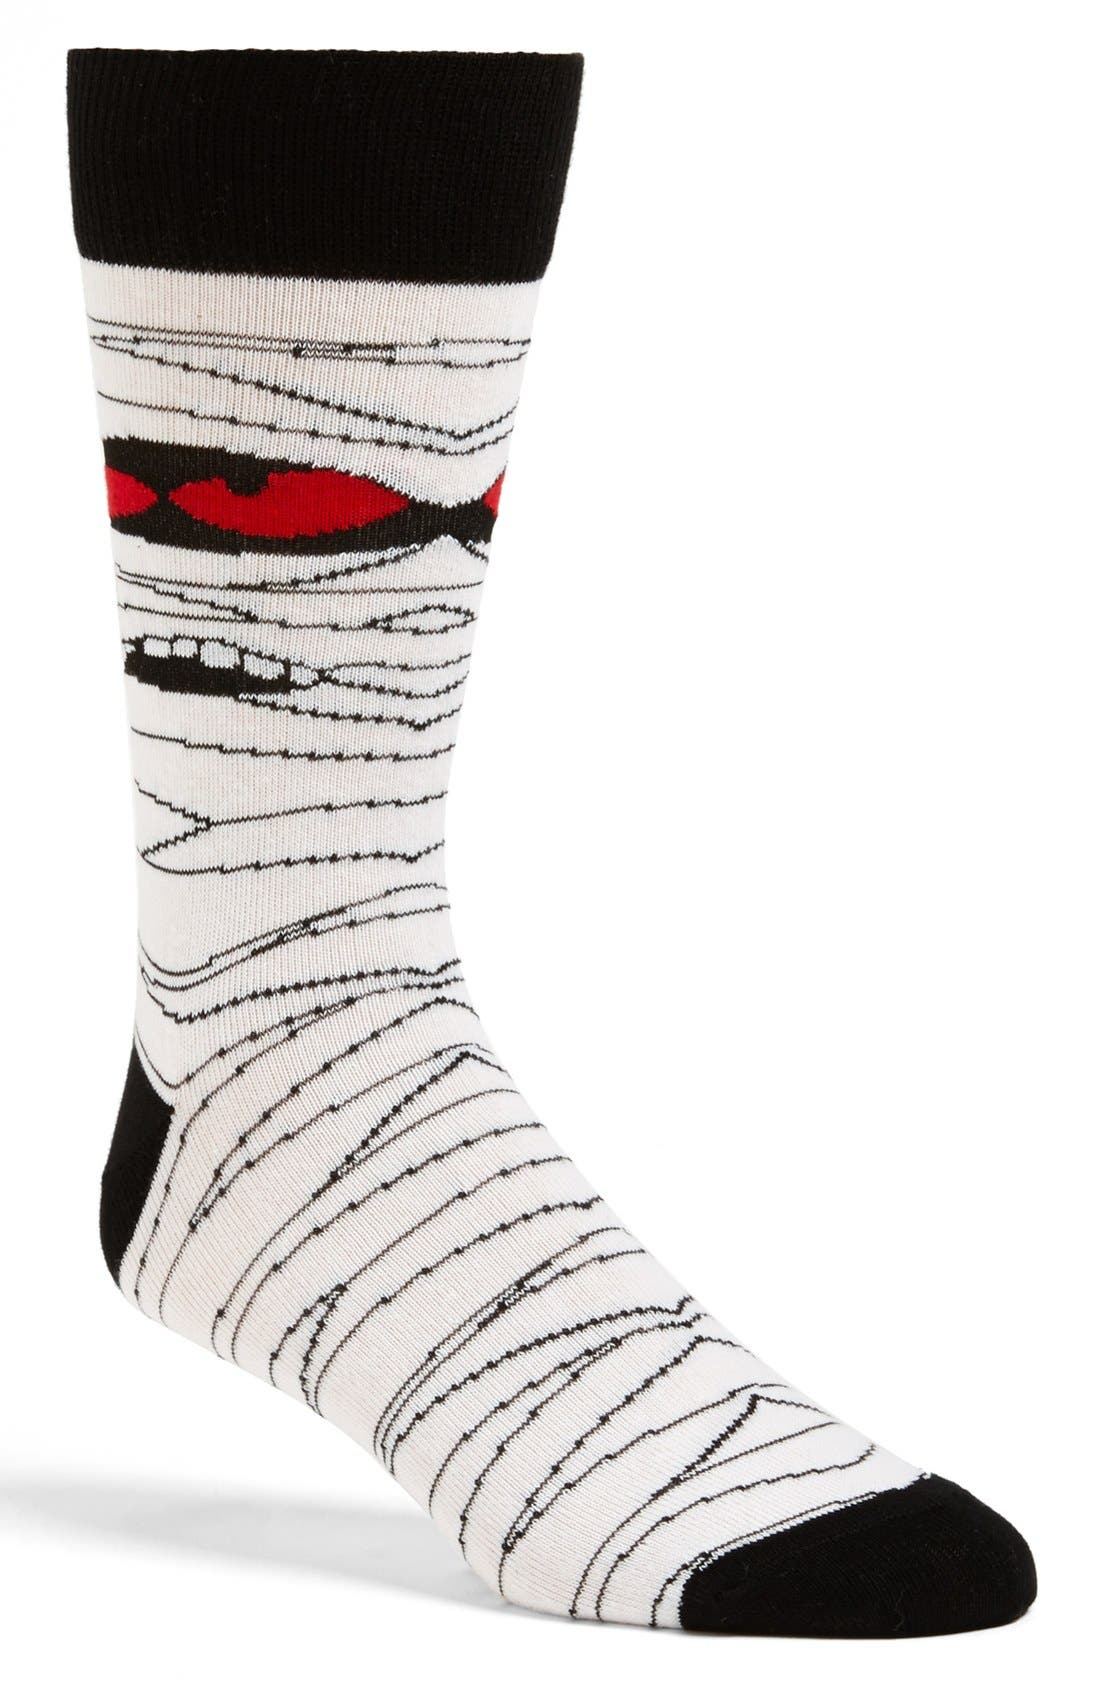 TOPMAN, Mummy Bandage Face Socks, Main thumbnail 1, color, 100